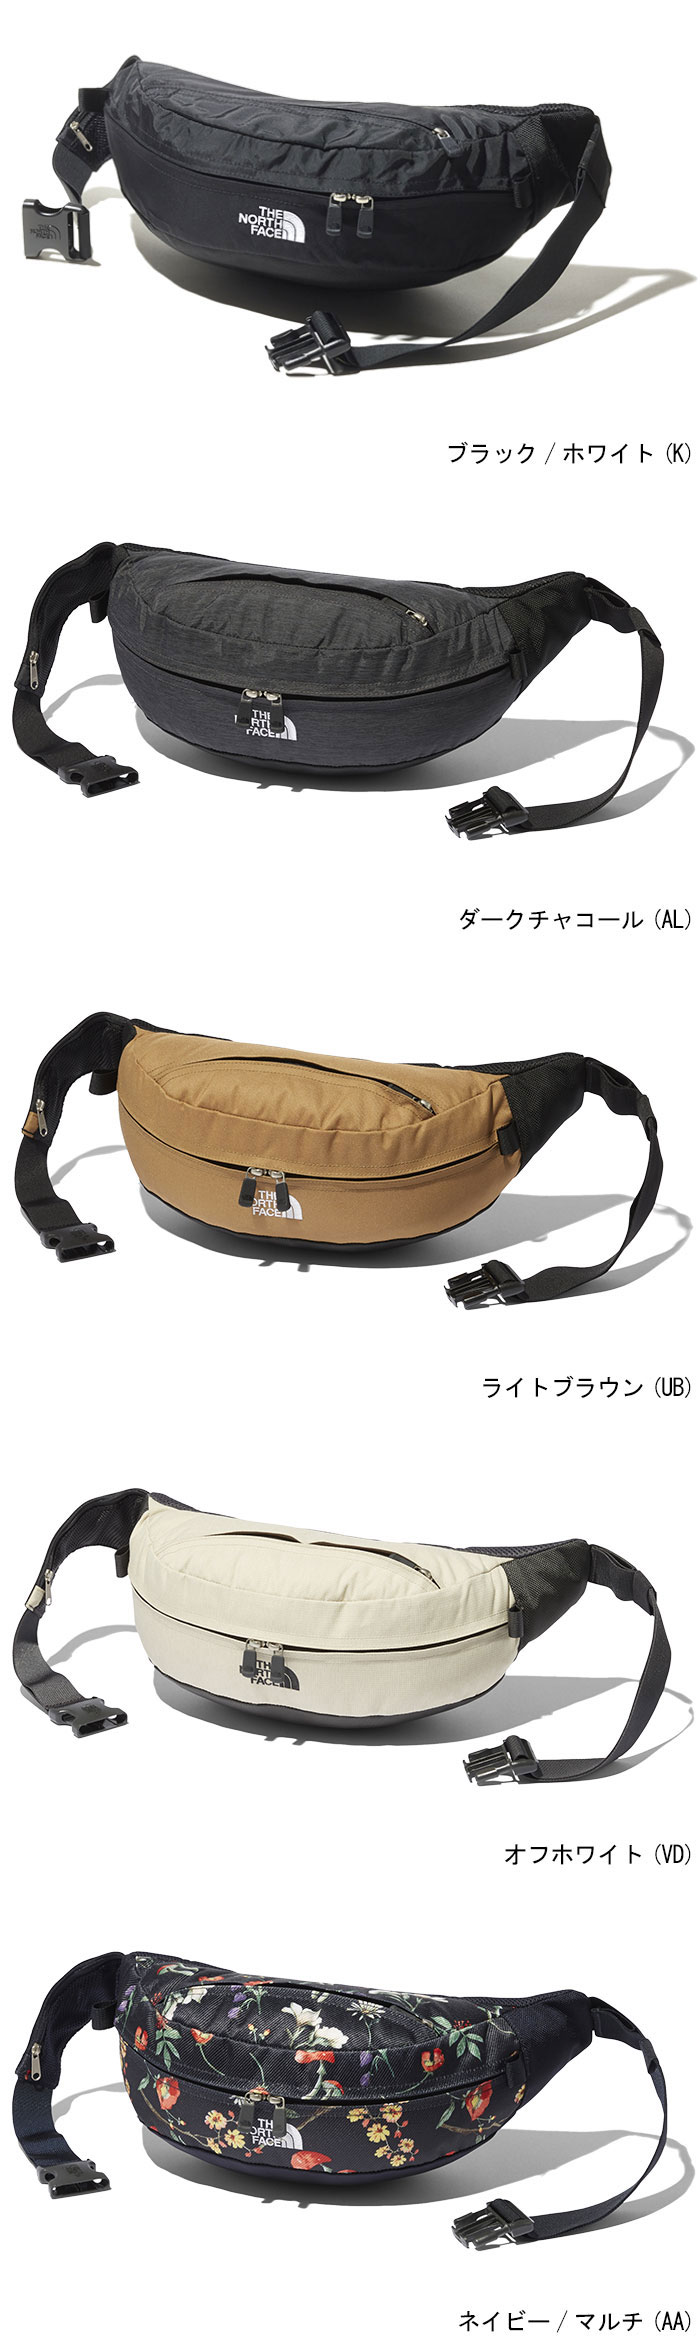 THE NORTH FACEザ ノースフェイスのバッグ Sweep Waist Bag04